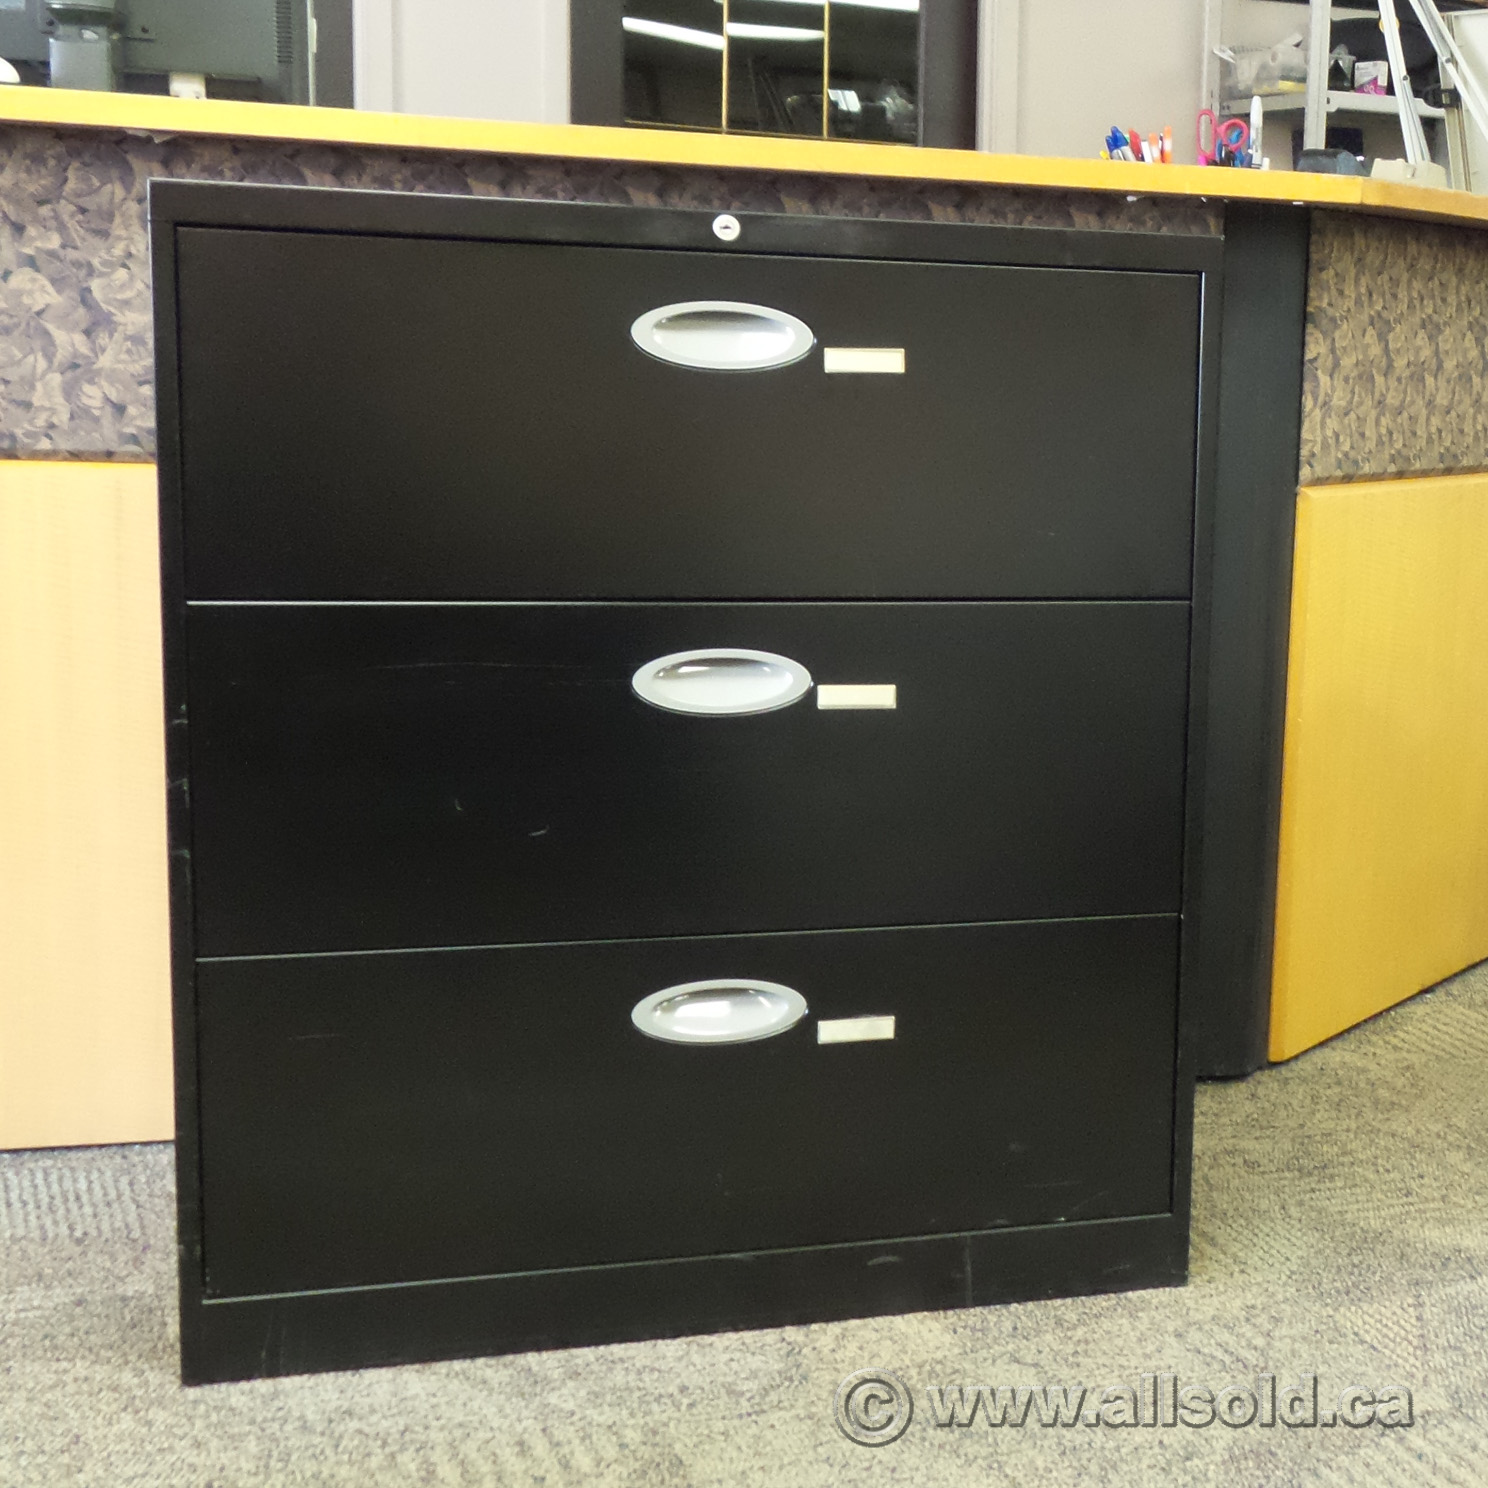 Kitchen Cabinets Repair Calgary Steelcase Turnstone Black 3 Drawer Lateral File Cabinet